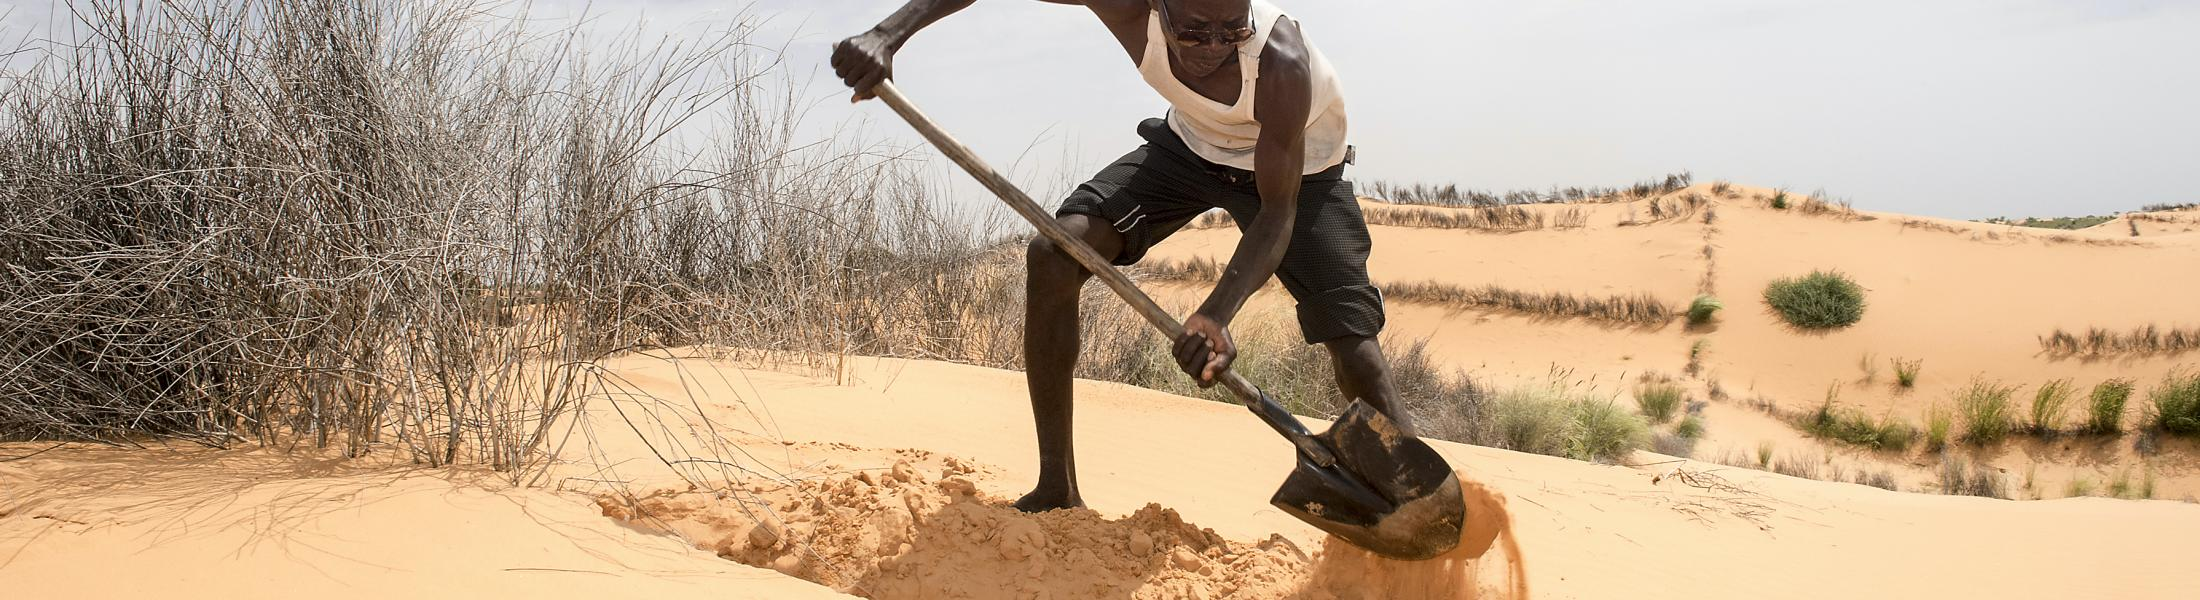 A man shovels sand in an arid environment.